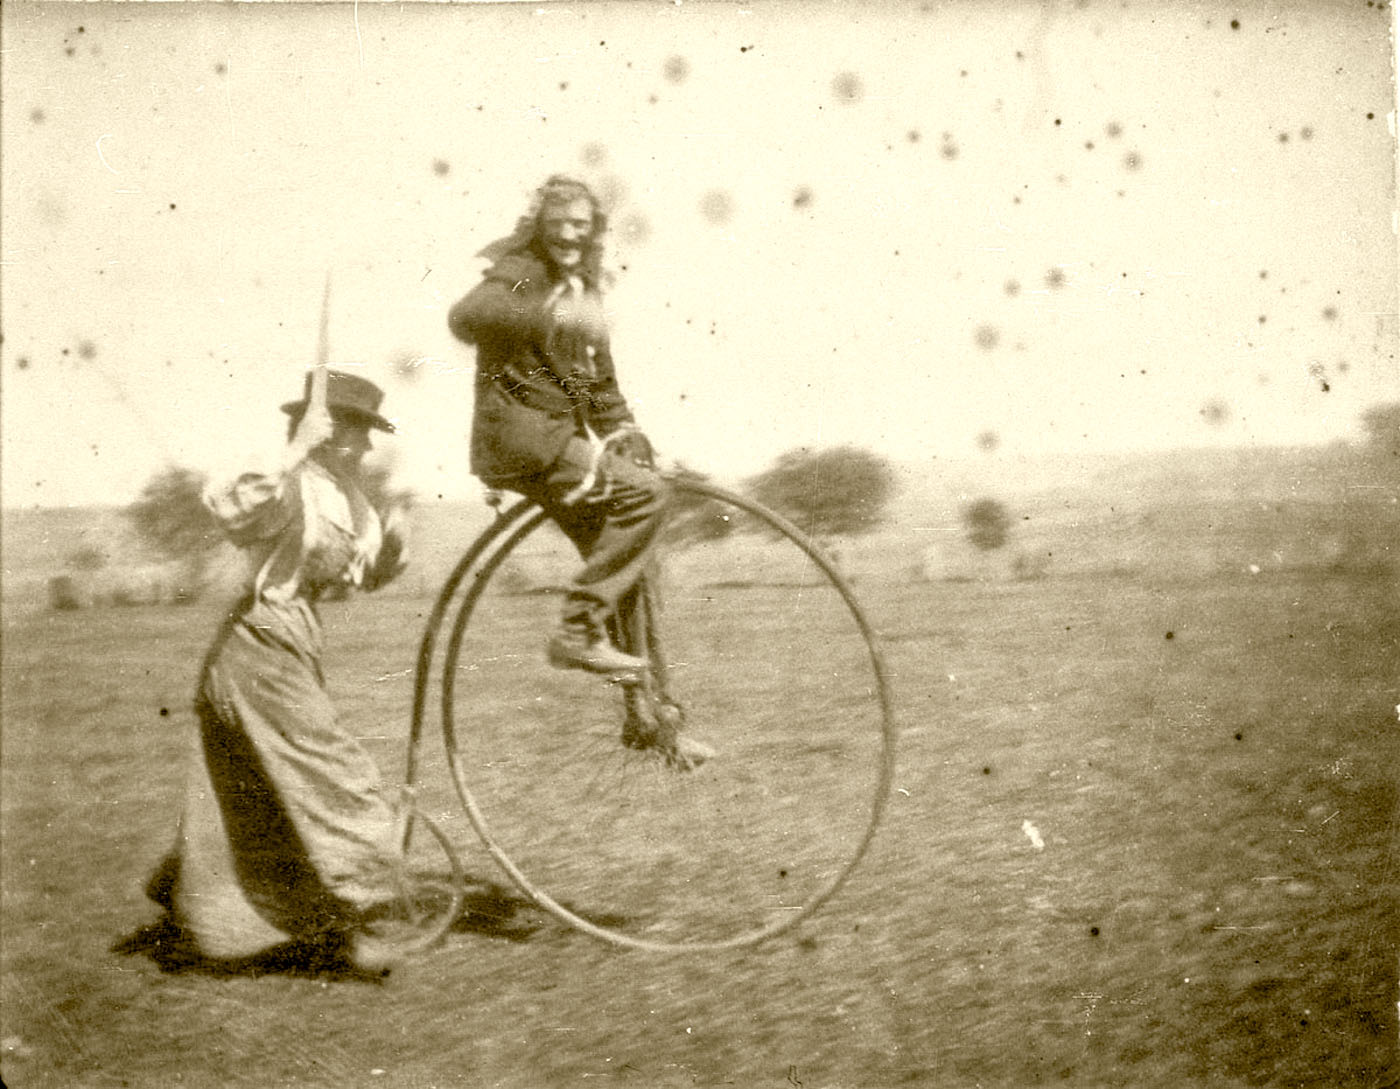 Bob Spiers on a Penny Farthing being chased by his sister Maggie, West Wyalong NSW. Image used courtesy of the Collection of the State Library of NSW